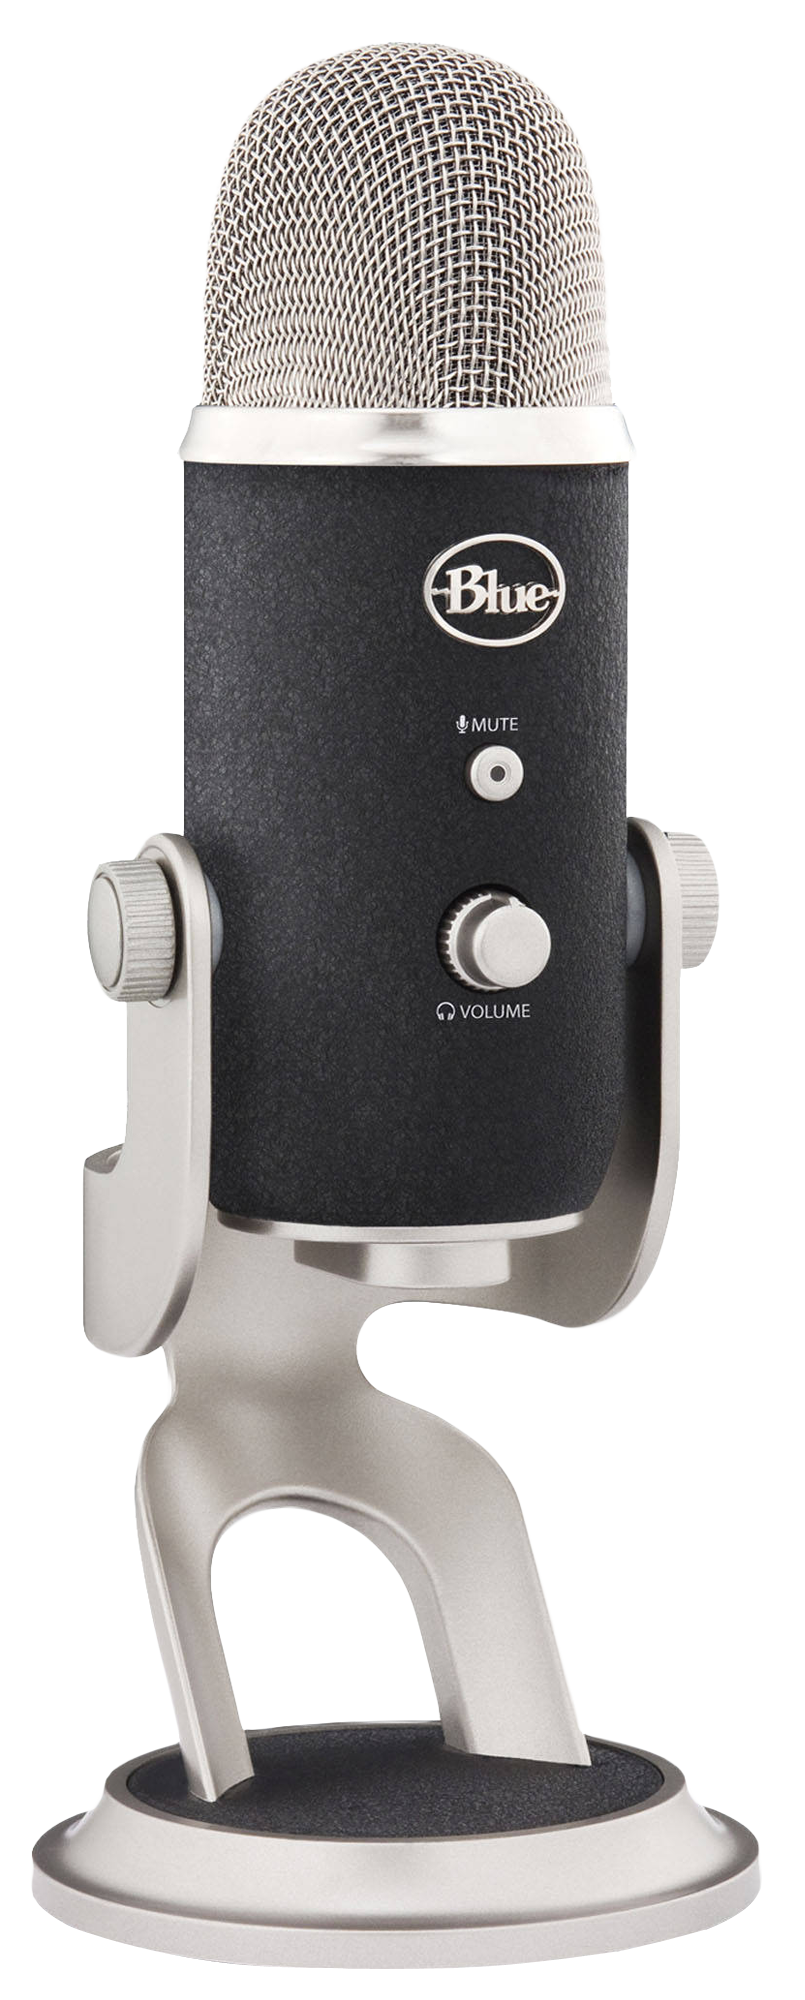 Podcast microphone png. Image purepng free transparent